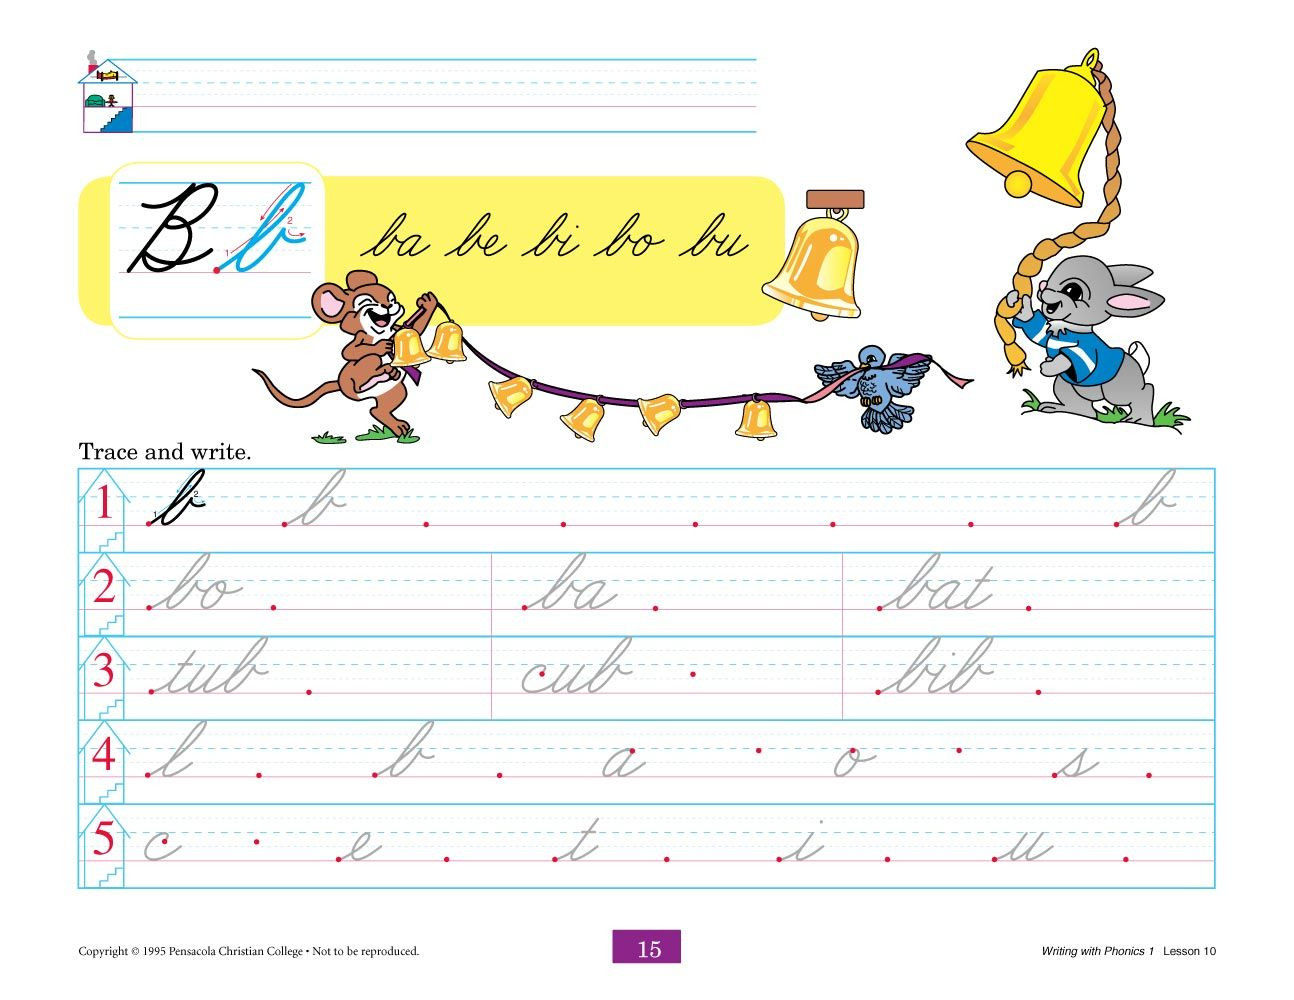 Free Printable Abeka Worksheets Writing with Phonics 1 Cursive